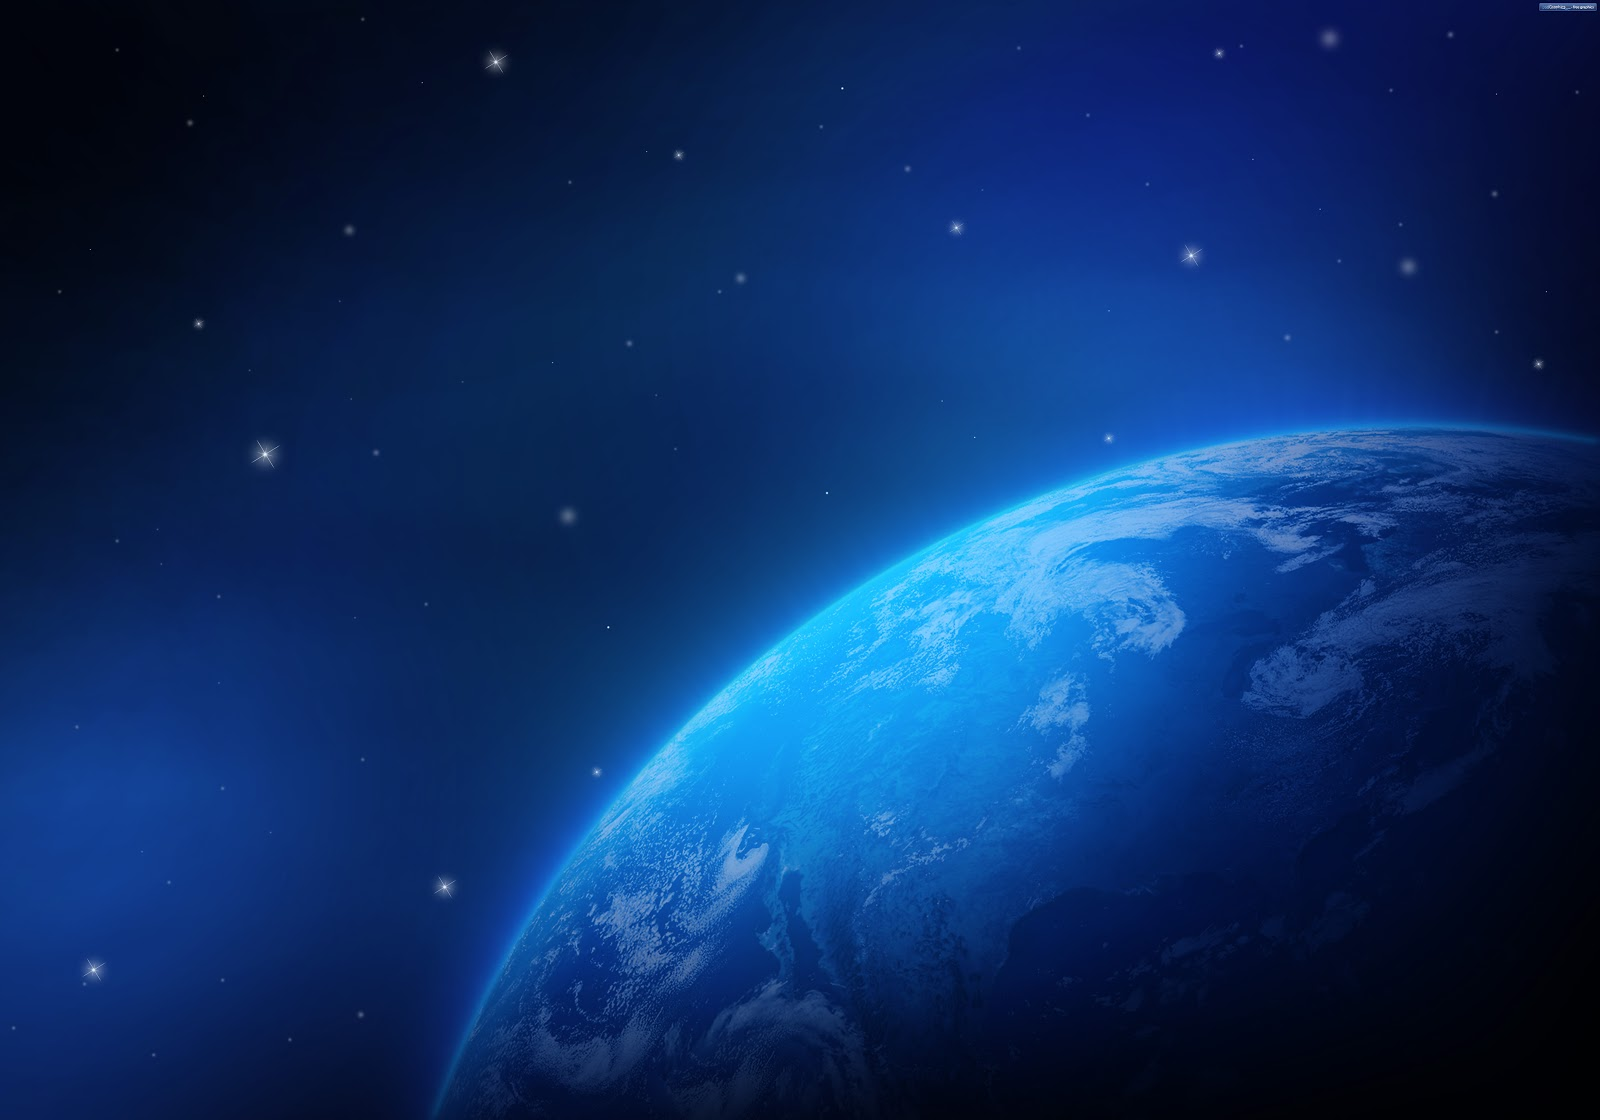 earth wallpaper high resolution - Mobile wallpapers